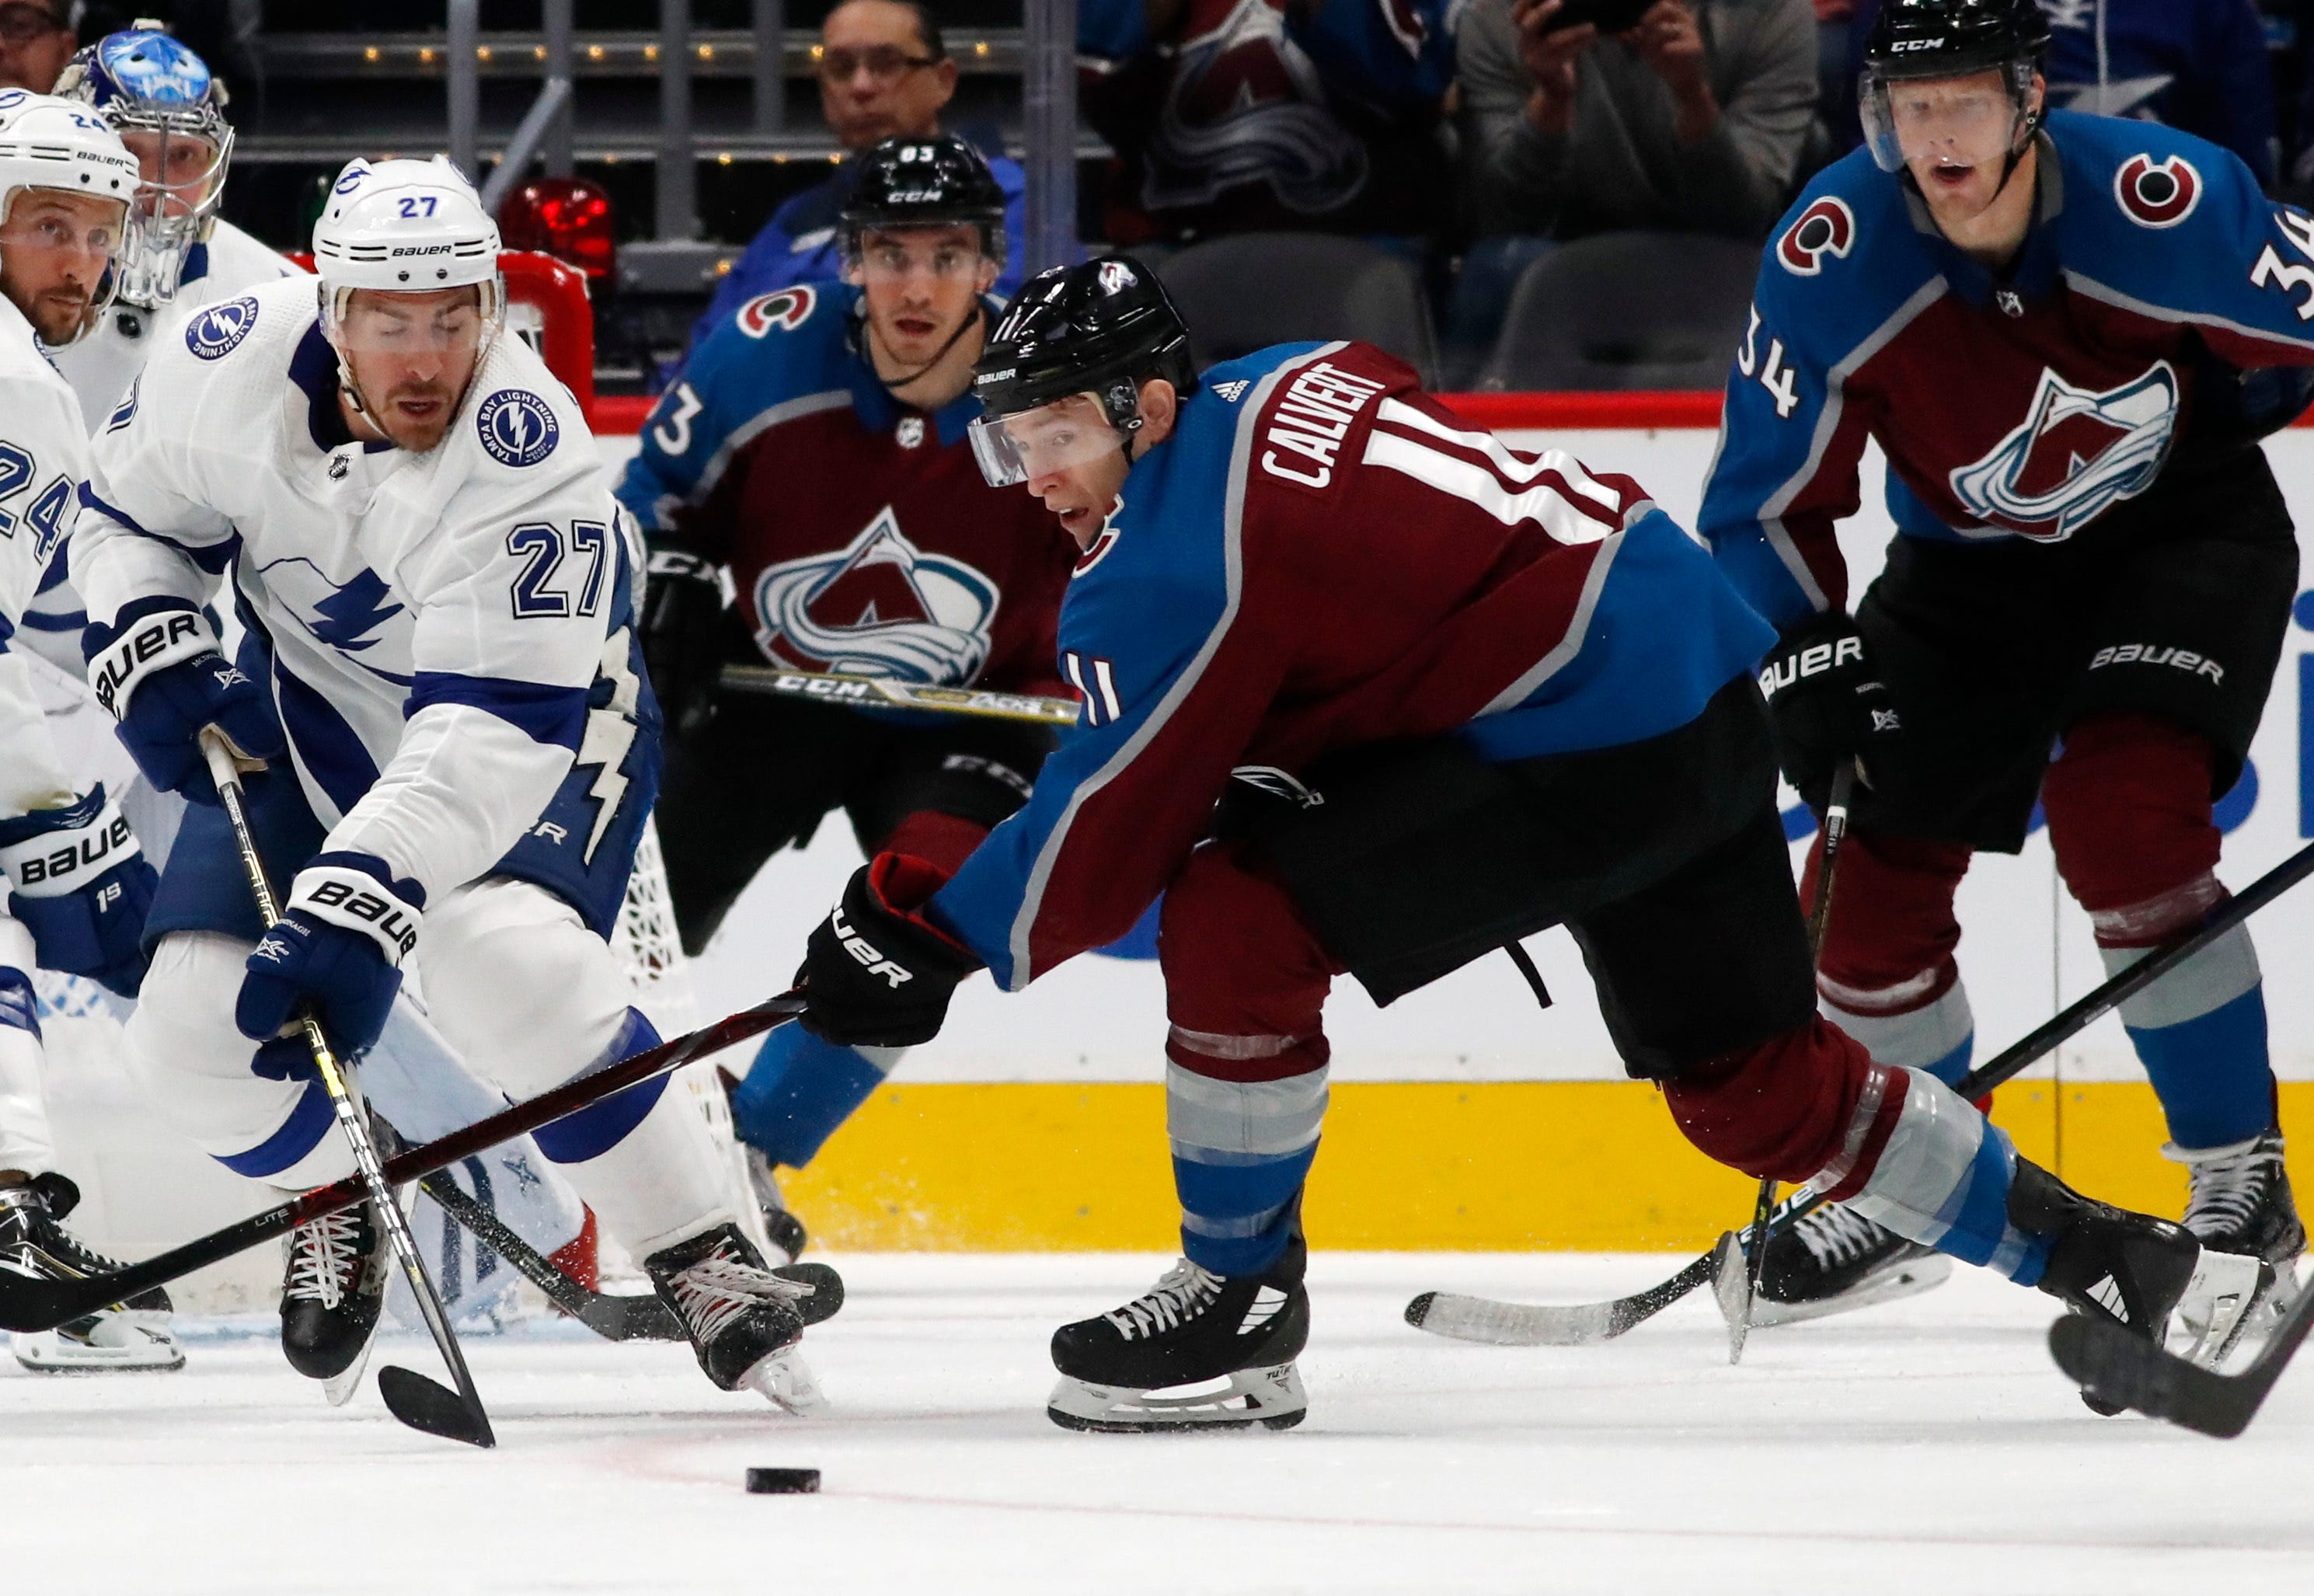 Kucherov's goal lifts Lightning to 1-0 win over Avalanche